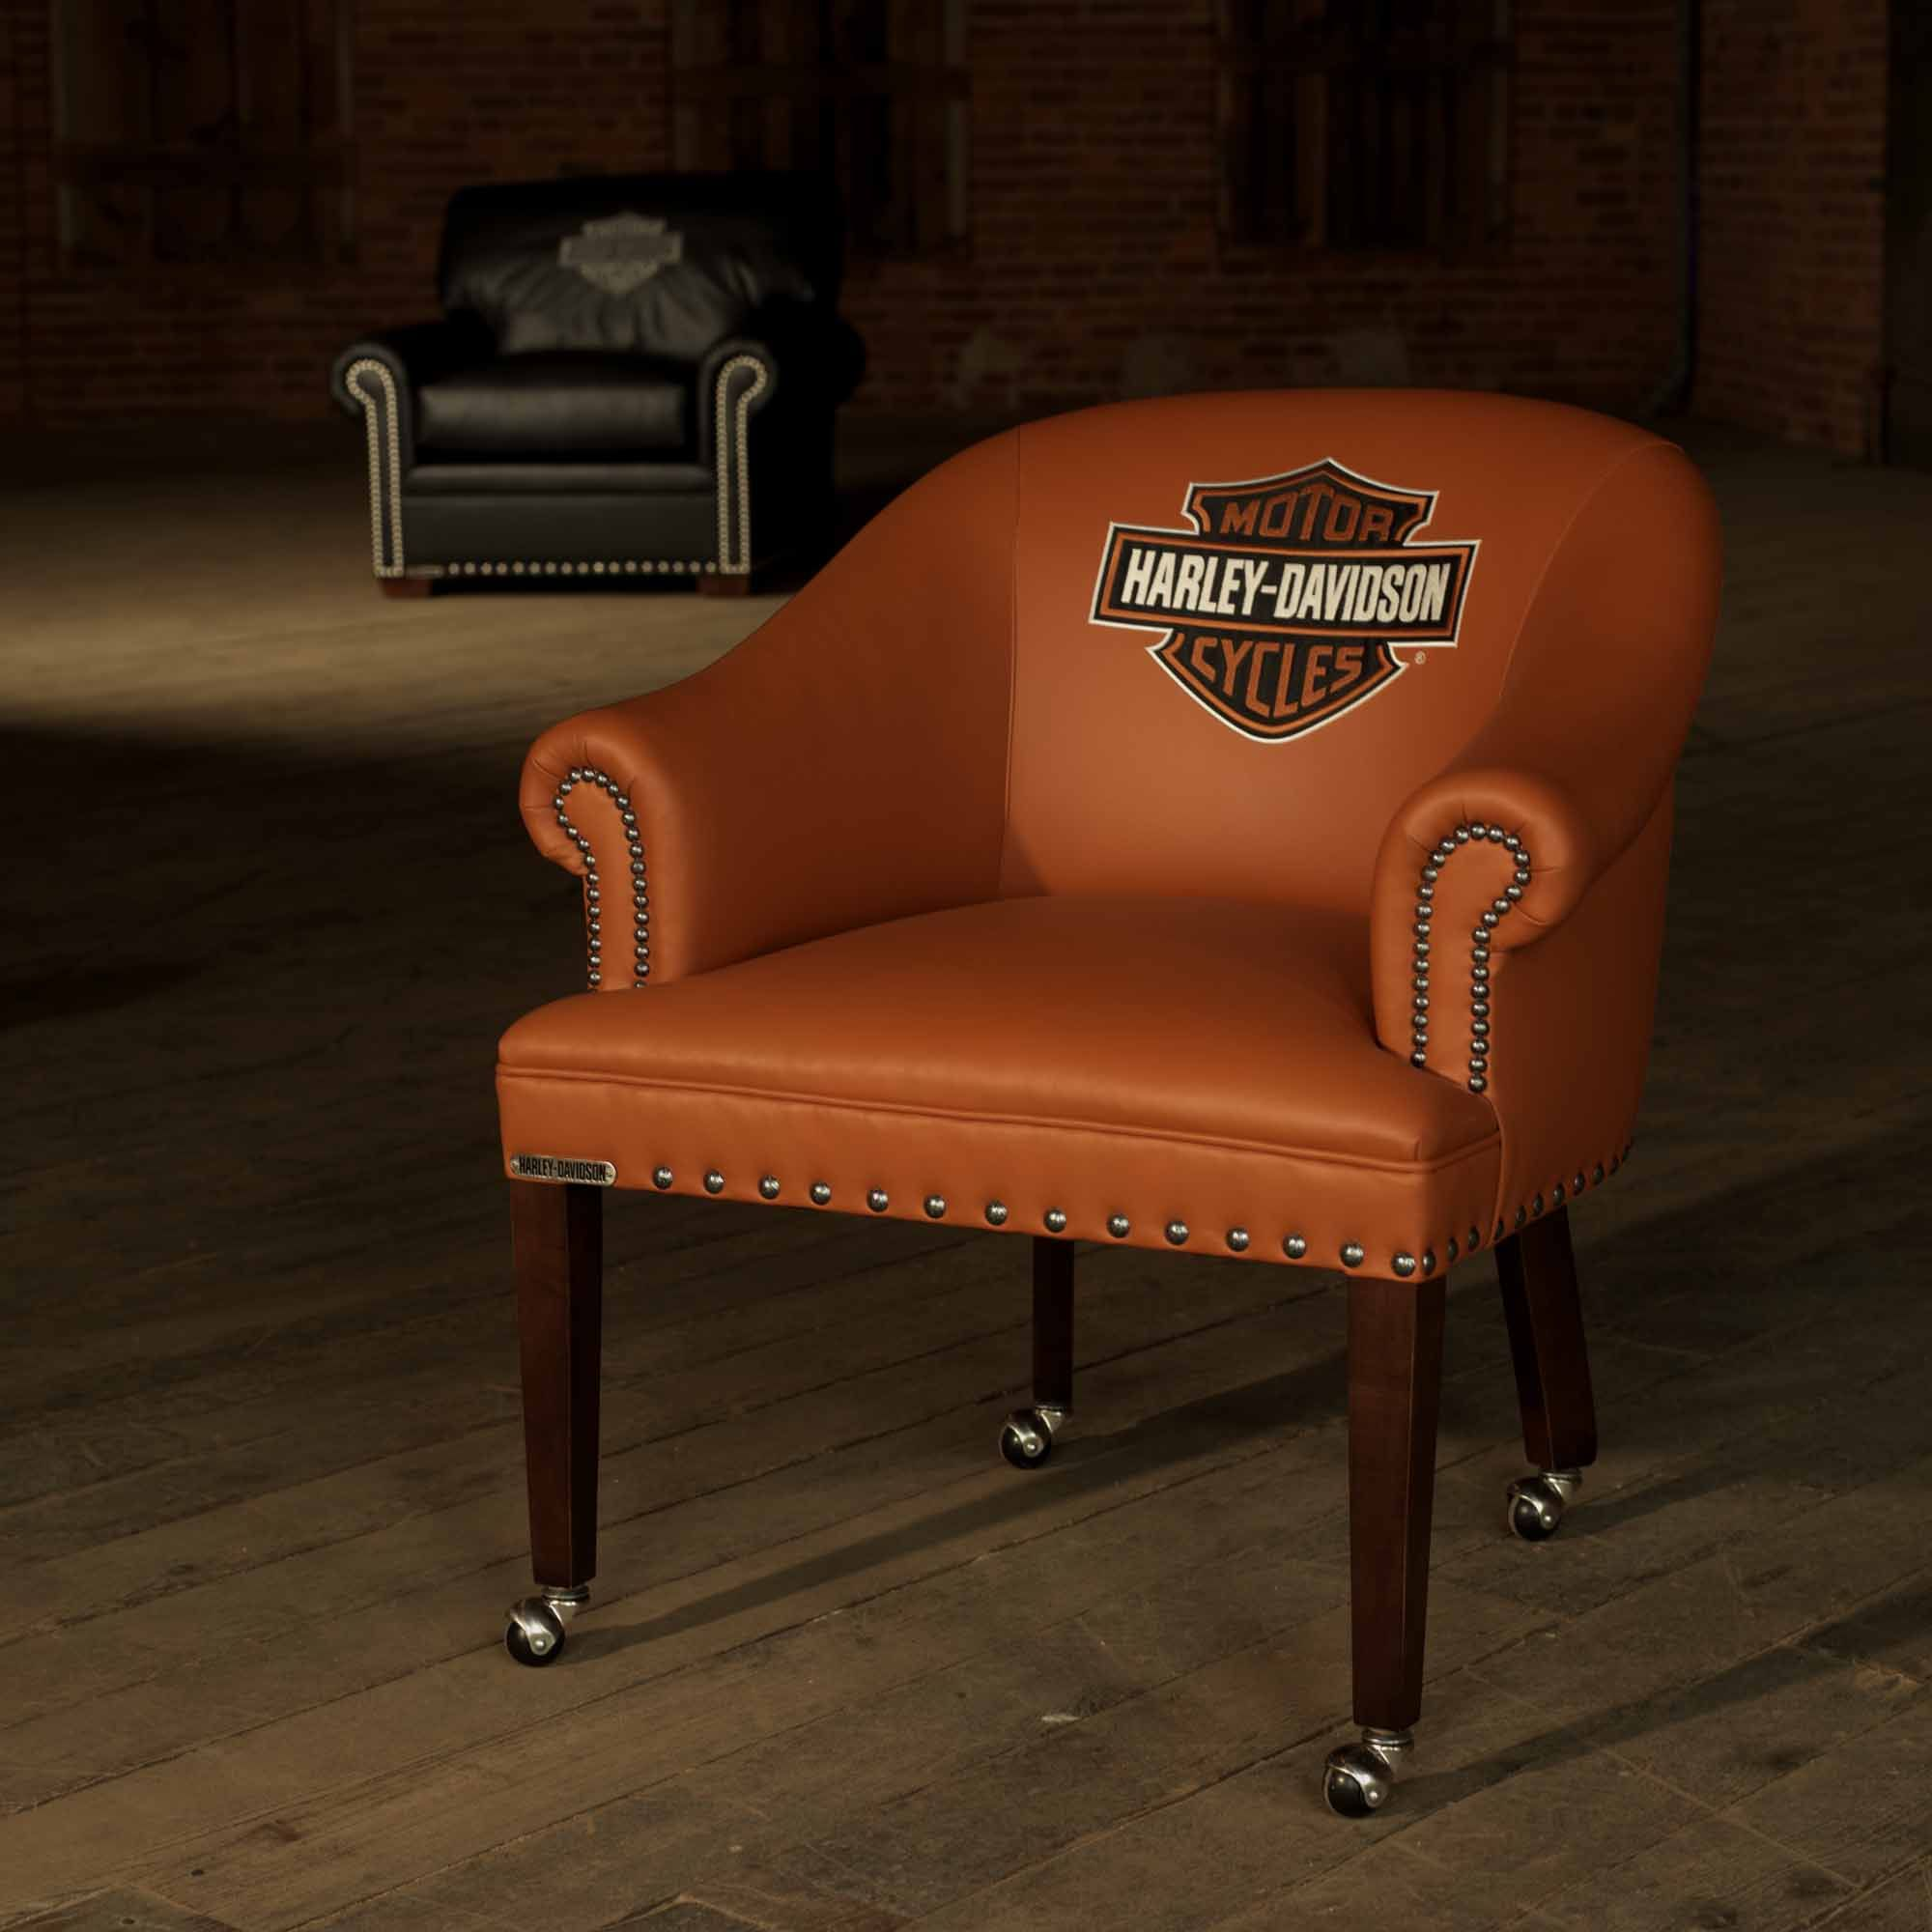 Harley Davidson Chairs Pin By Classic Leather Inc On Harley Davidson Furniture